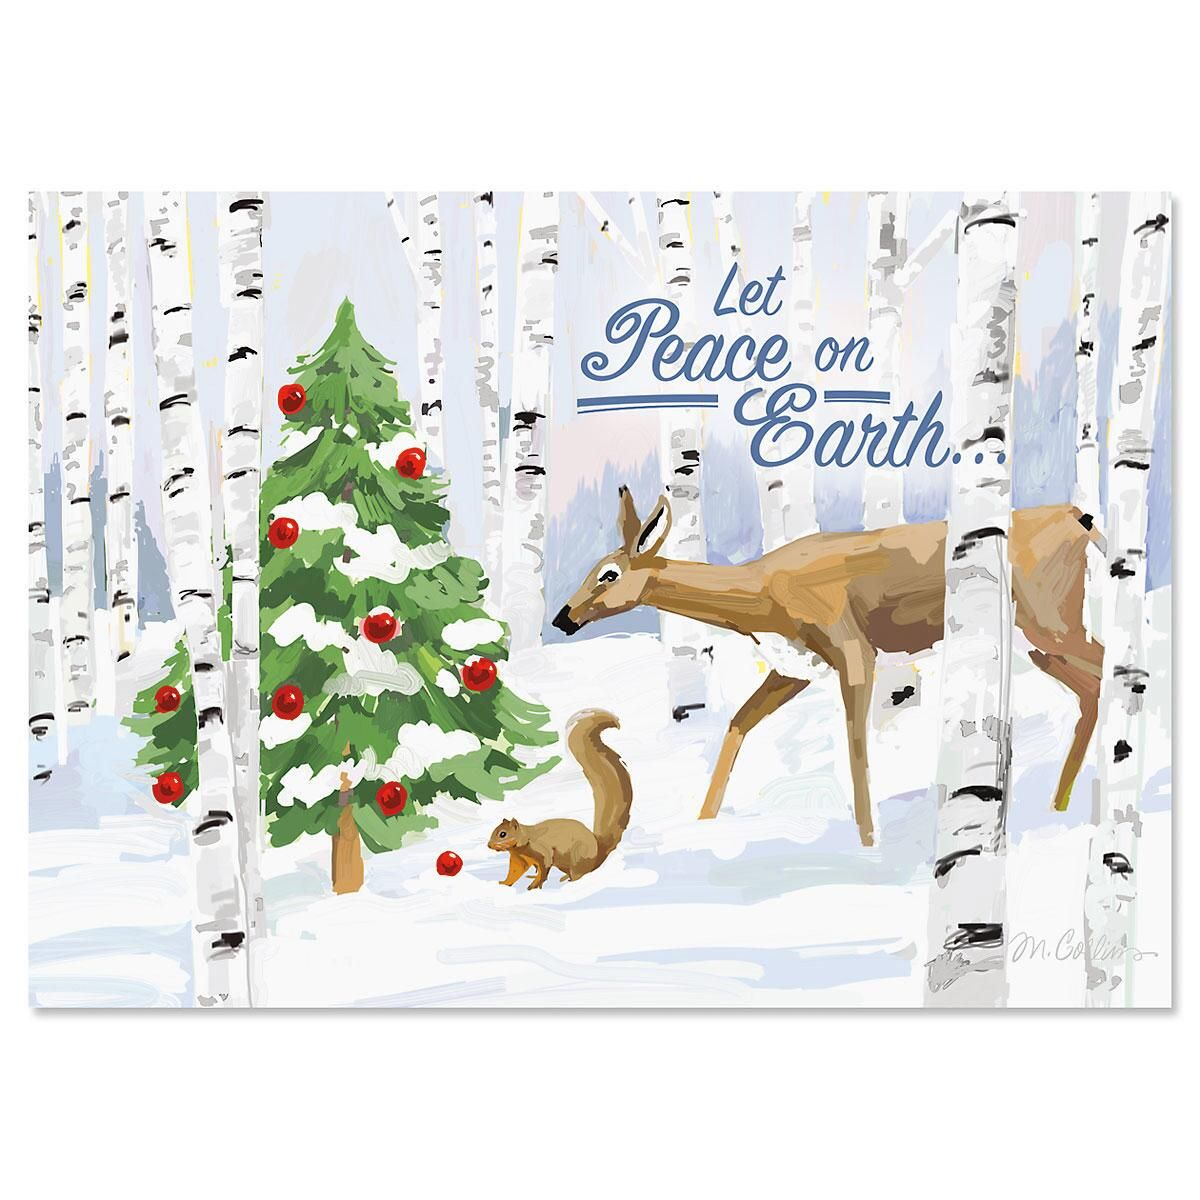 Forest Curiosity Nonpersonalized Christmas Cards - Set of 18